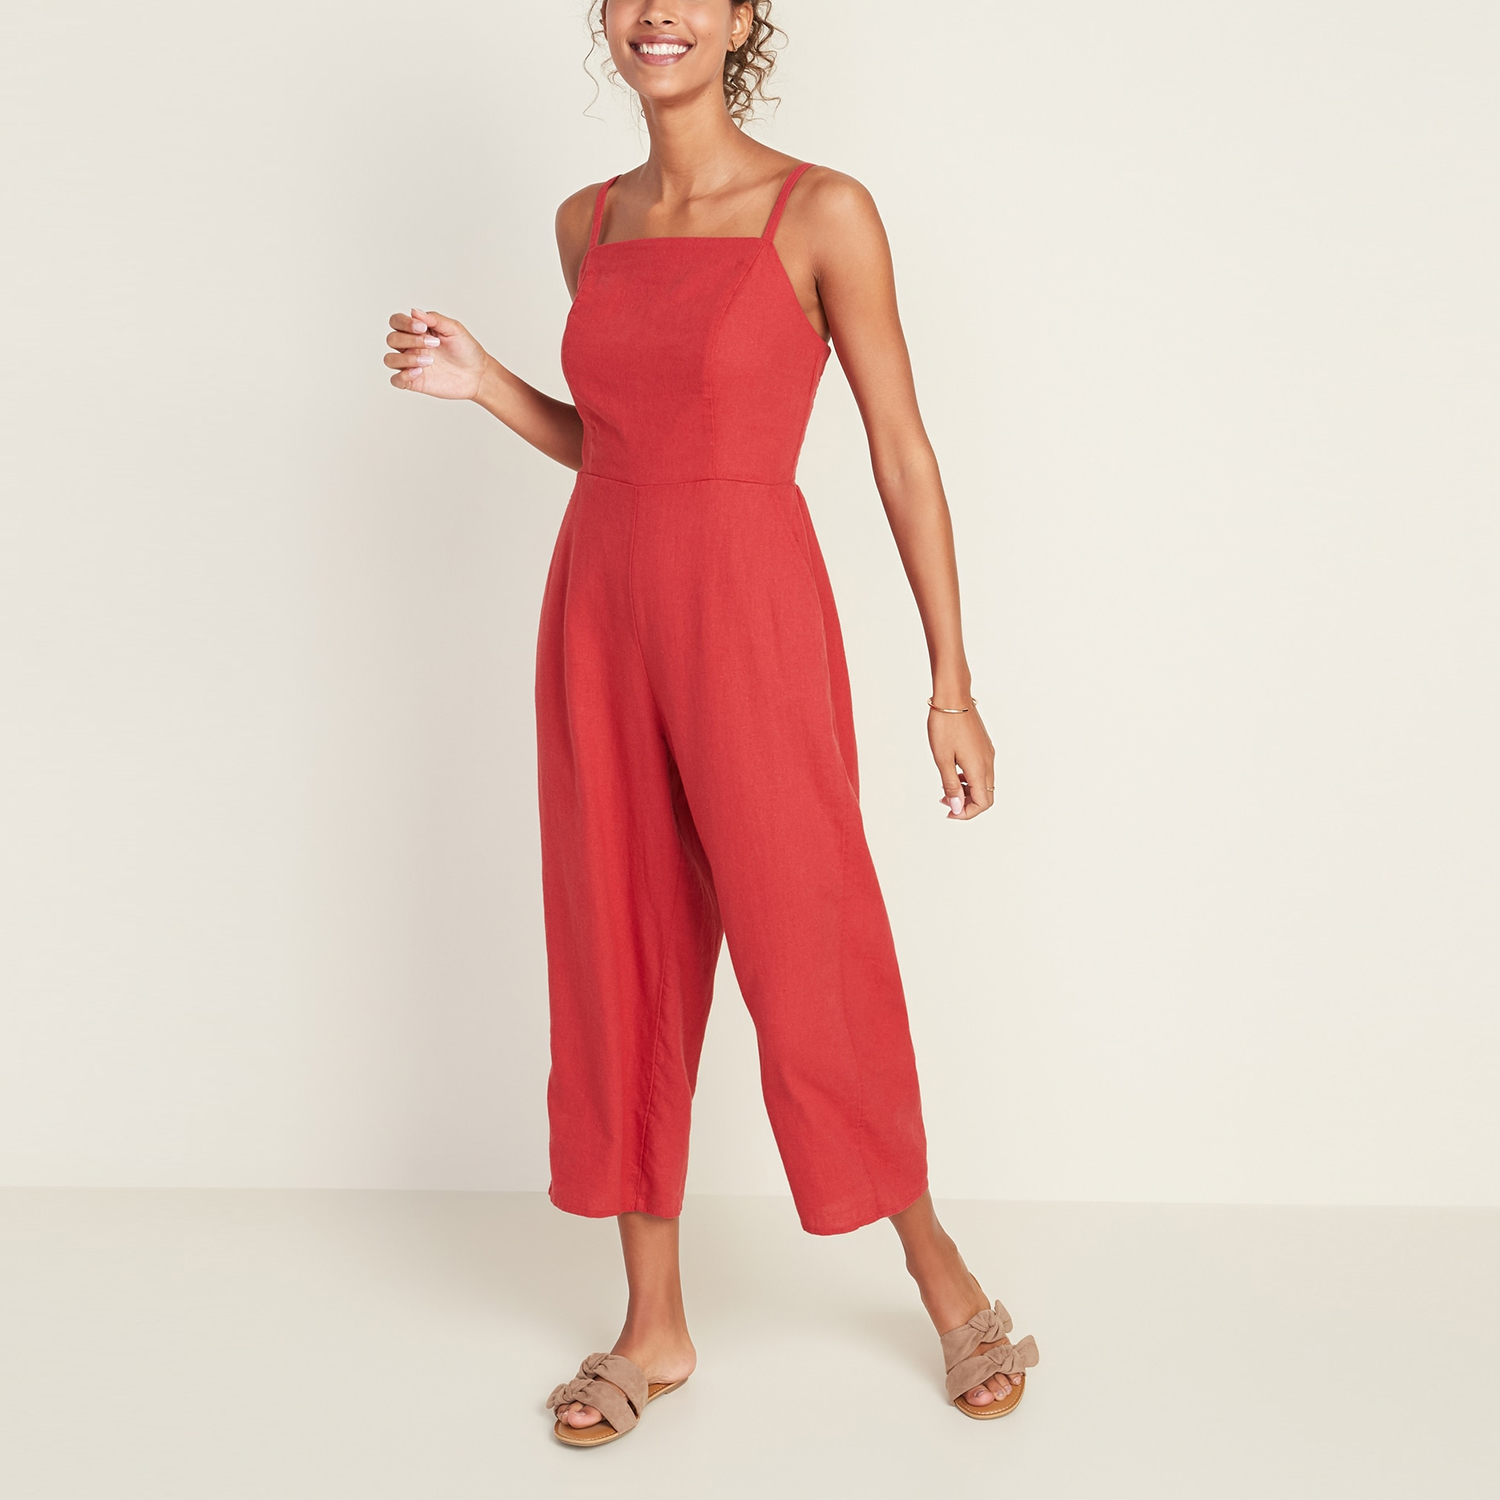 Old Navy Summer Fashion Sale for Women